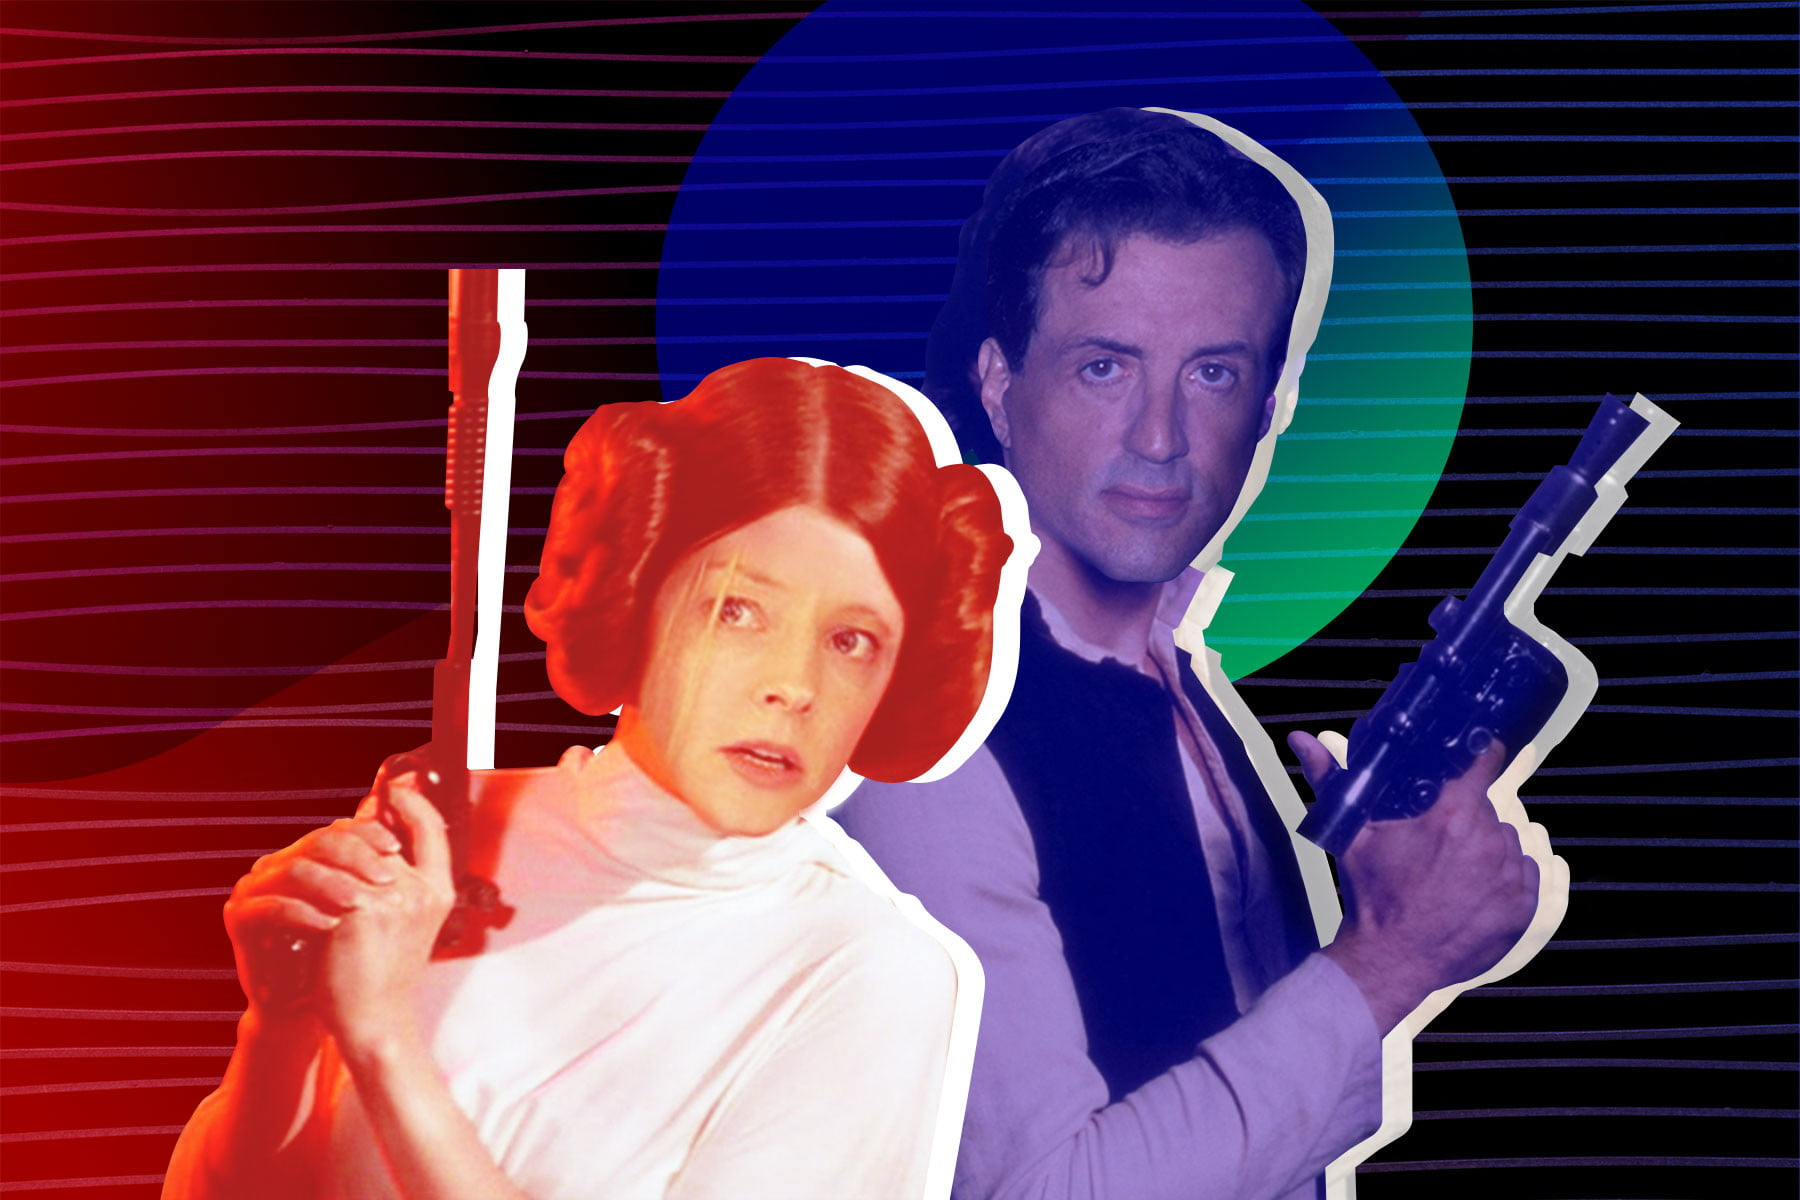 1621957289 Sylvester Stallone as Han Solo and Jodie Foster as Leia